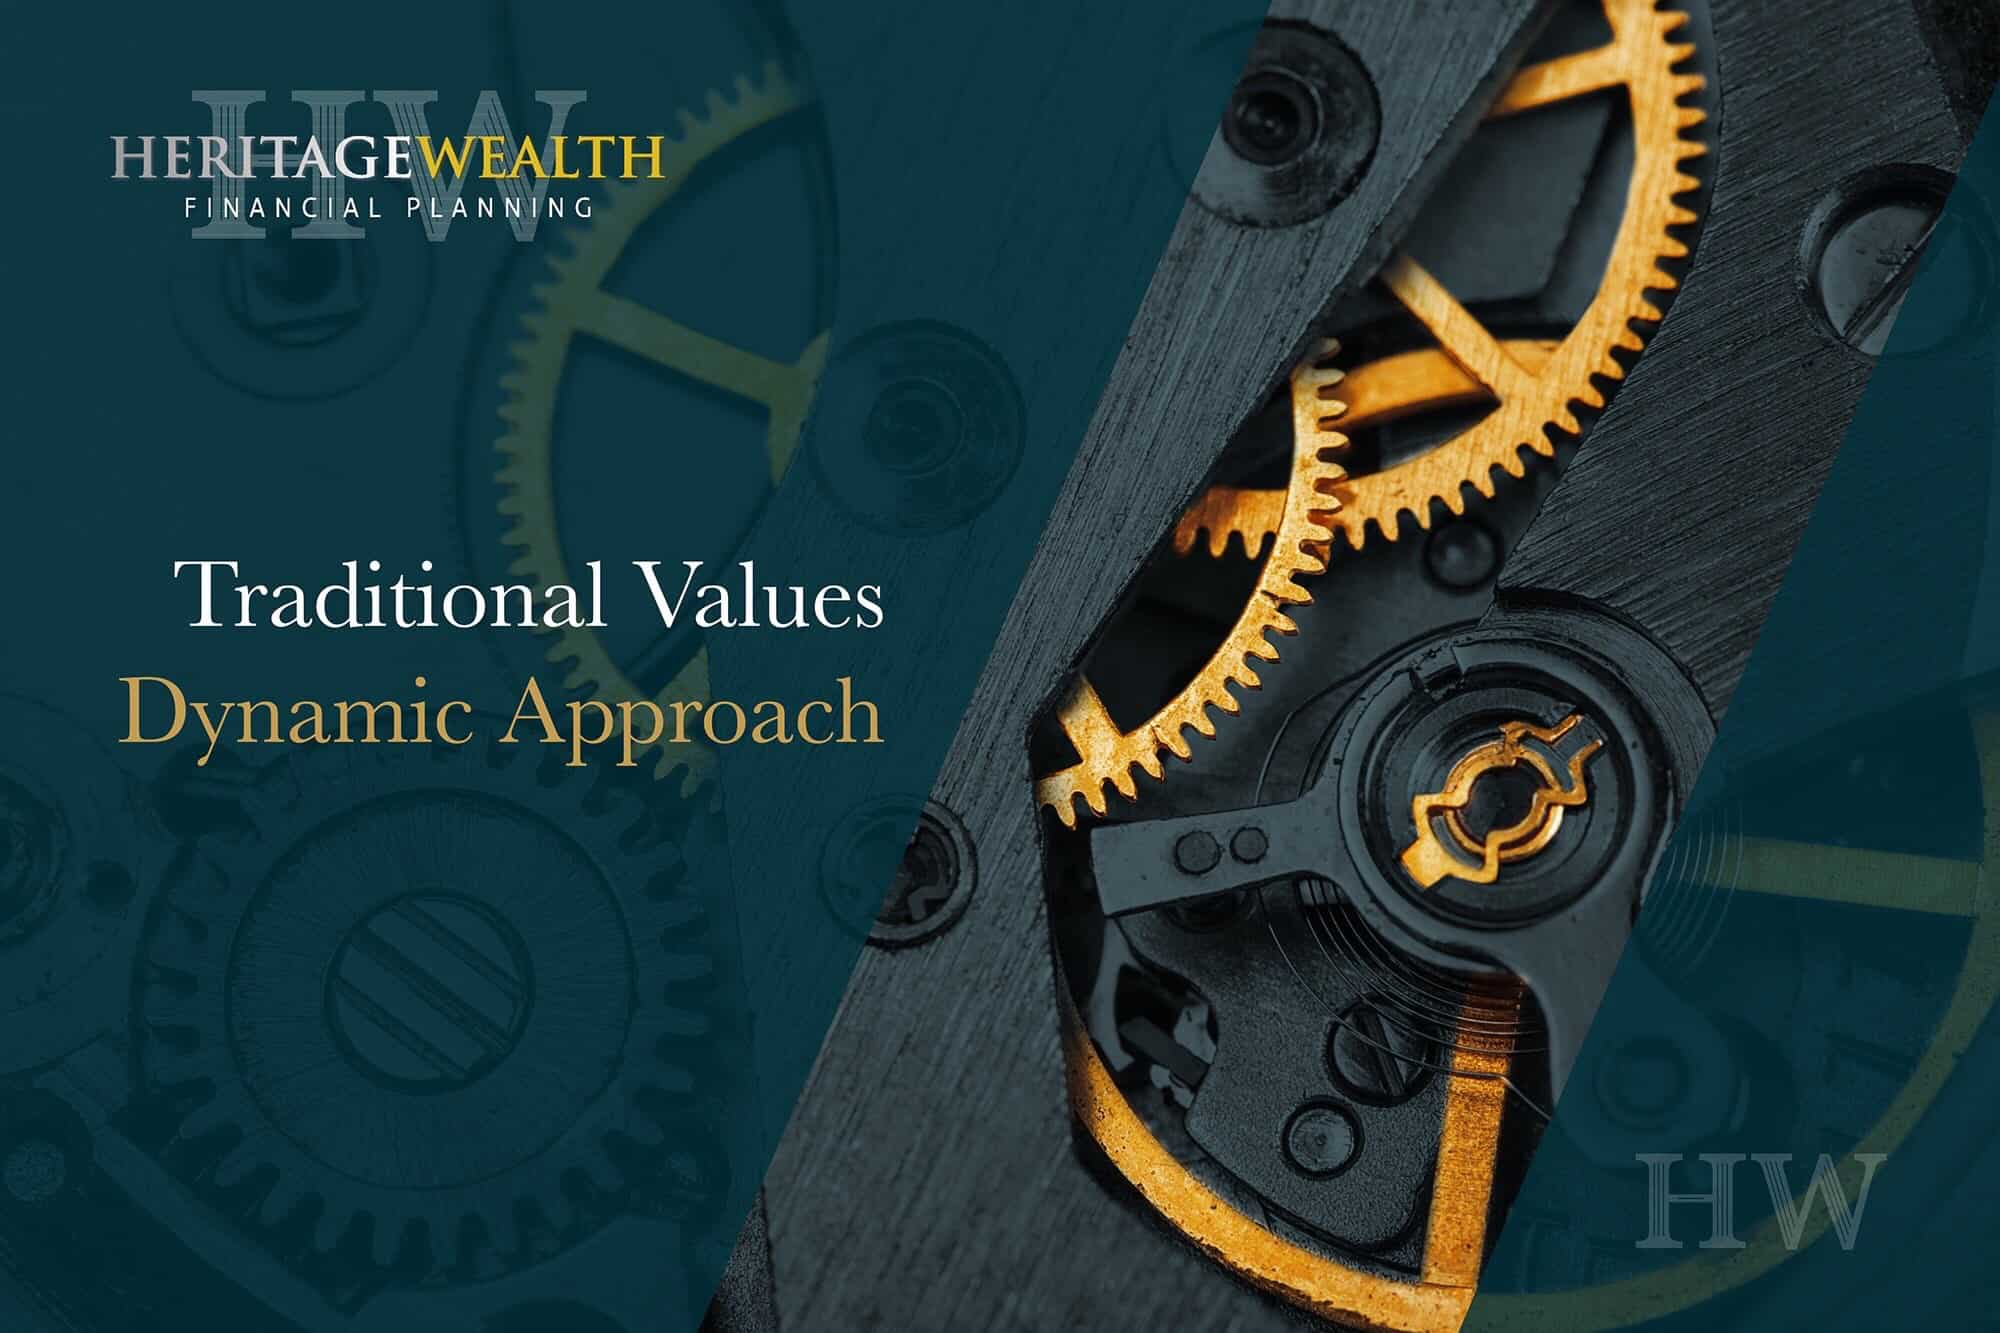 Traditional Values - Dynamic Approach